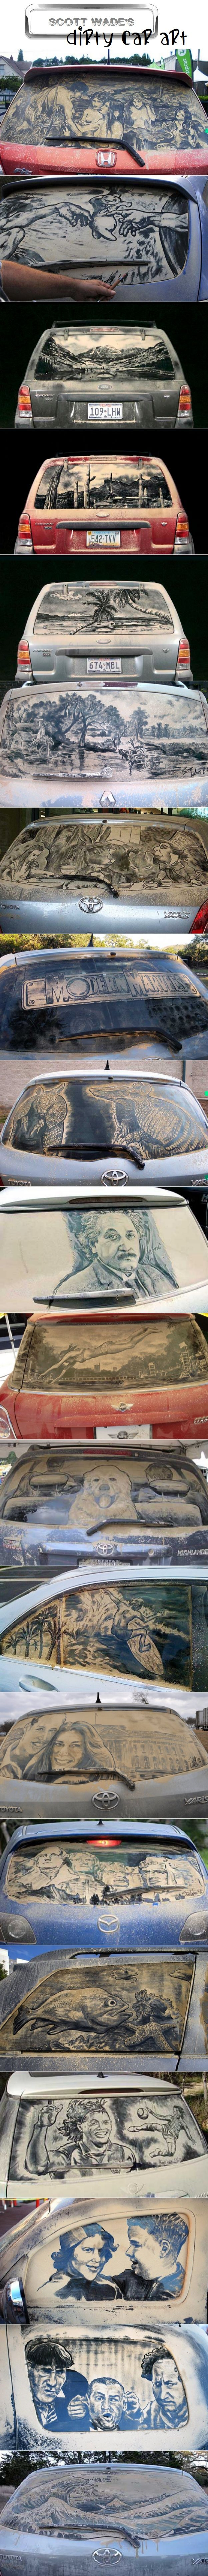 "Check out these really cool ""Dirty Car Art"" pictures."